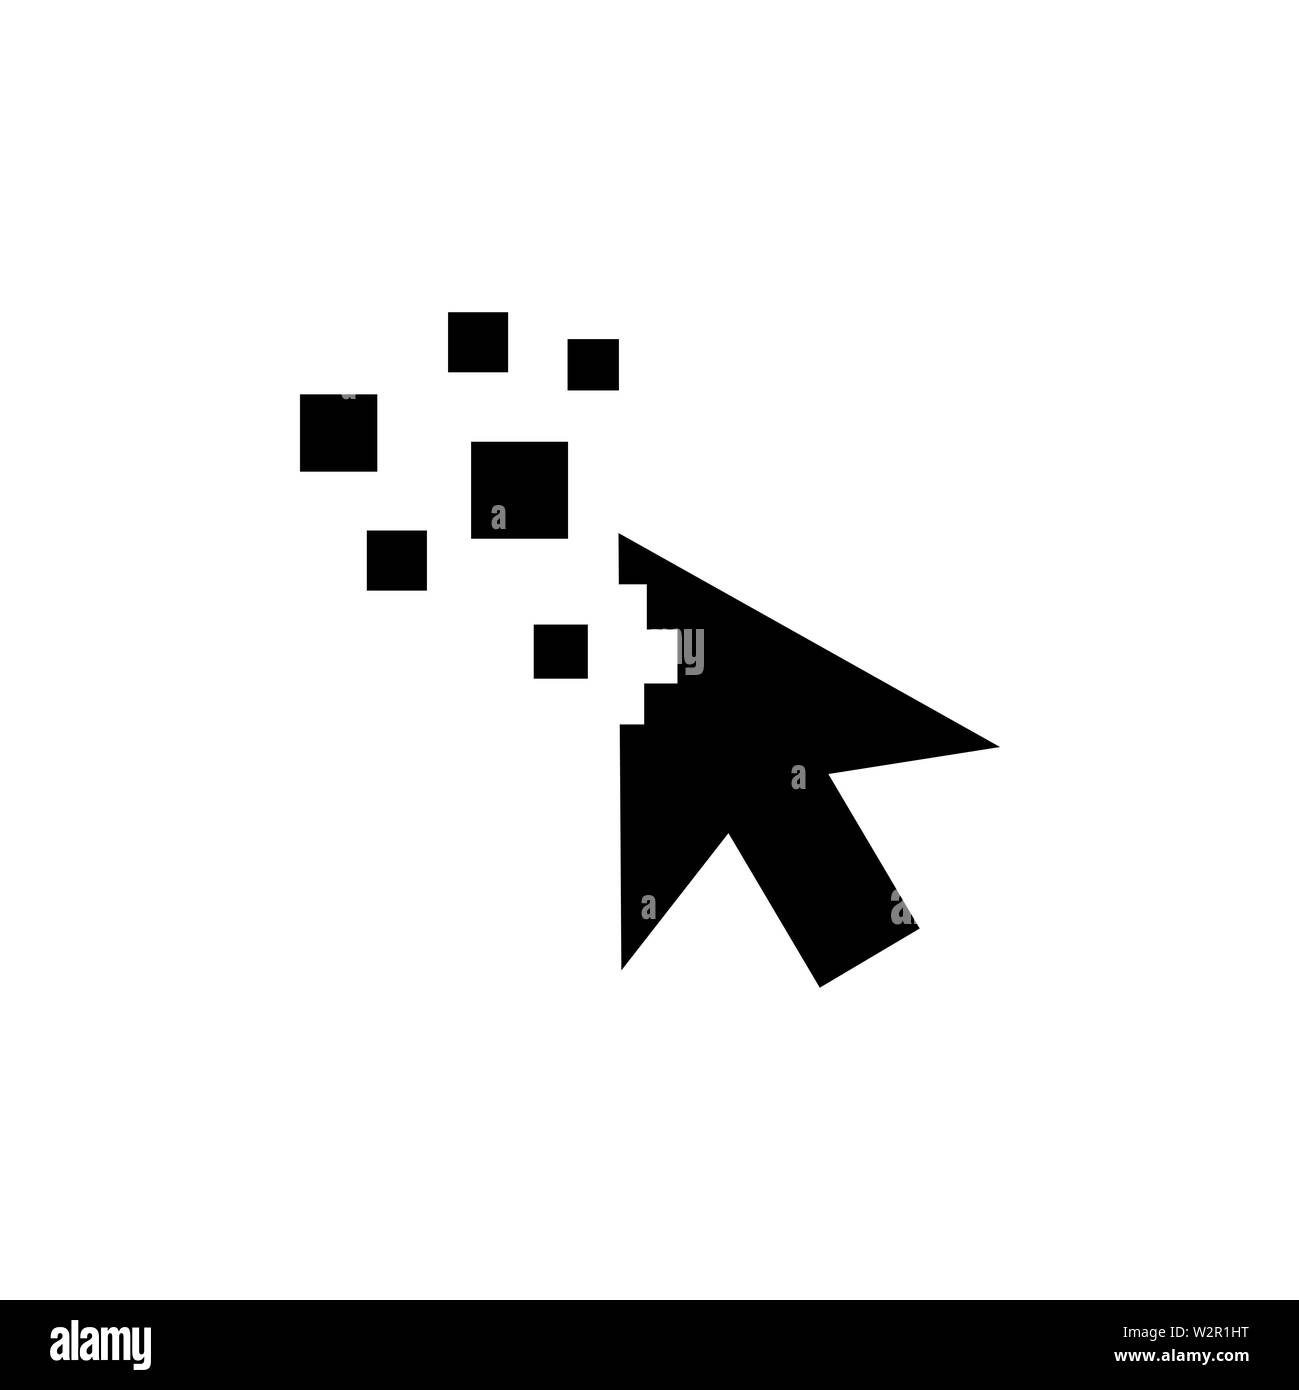 Mouse Pointer Stock Photos & Mouse Pointer Stock Images - Alamy